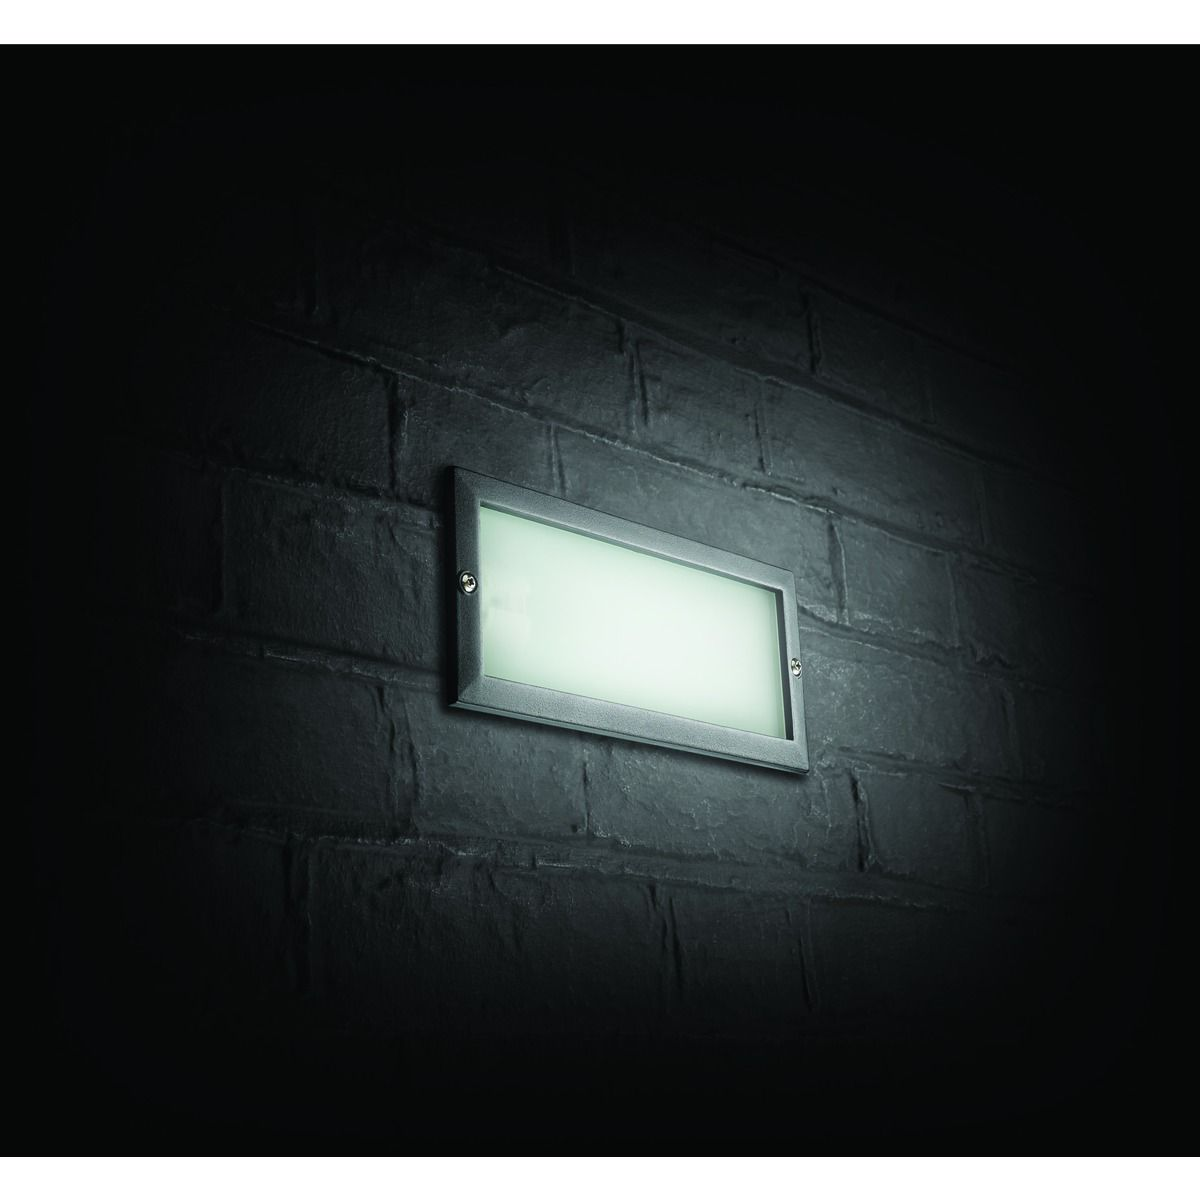 Search outdoor wall lights Wickes.co.uk